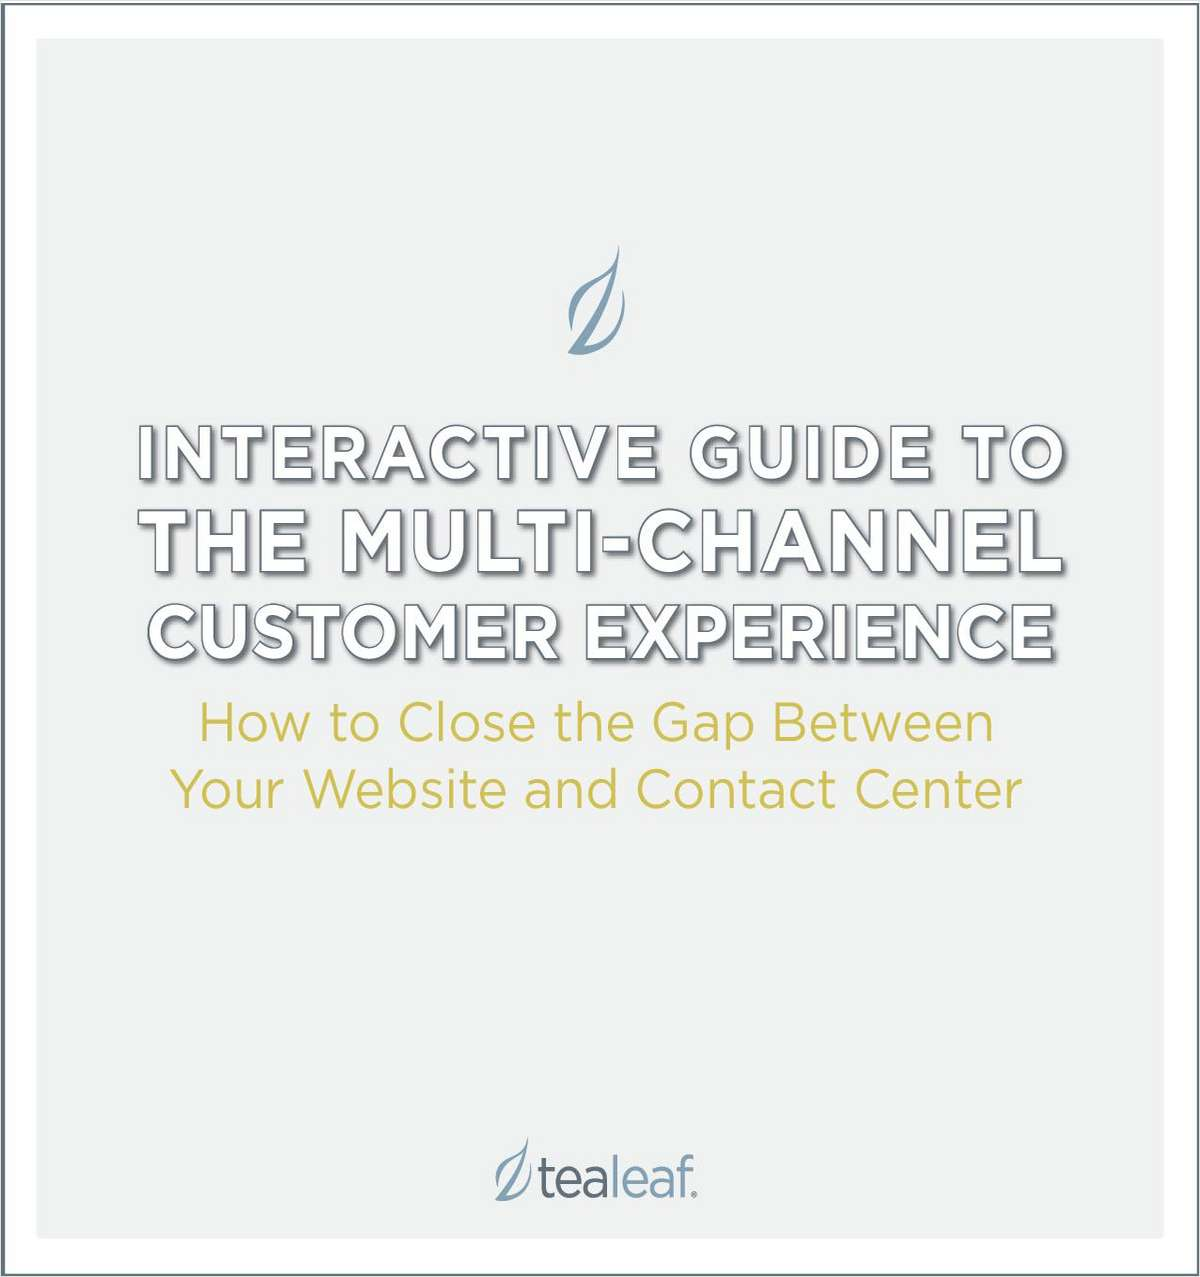 Guide to the Multi-Channel Customer Experience